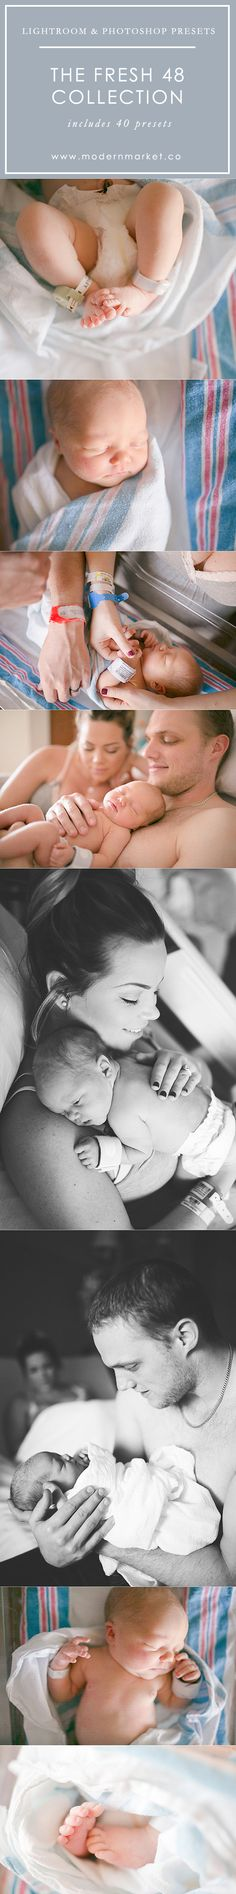 Perfect presets for in hospital sessions! This is for those of you who love offering clients Fresh sessions 48 & Birth photography!